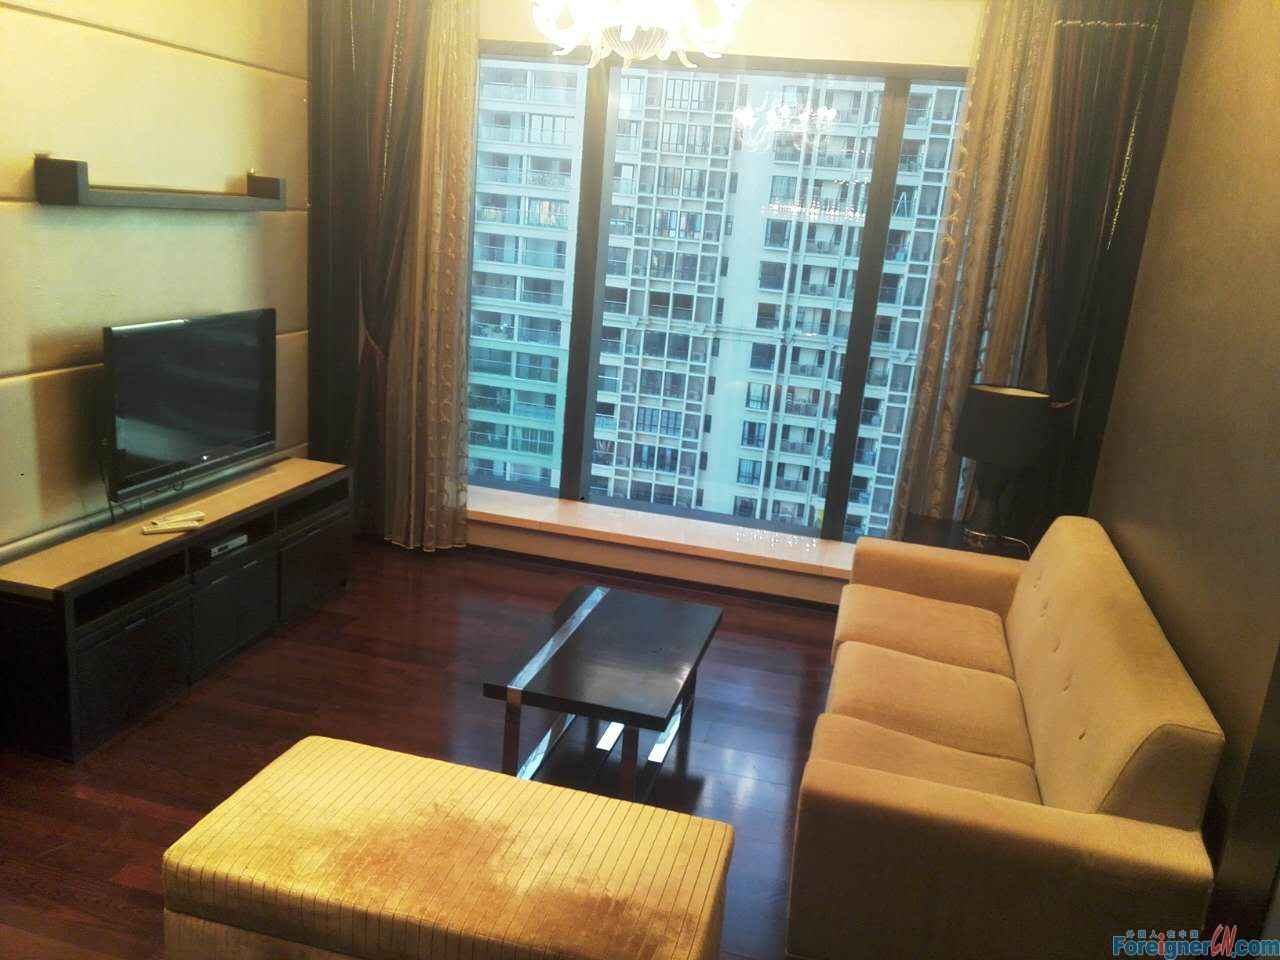 W Hotel Serviced apartment【领峰】very morden apt,so cozy and have a good view,new avaliable